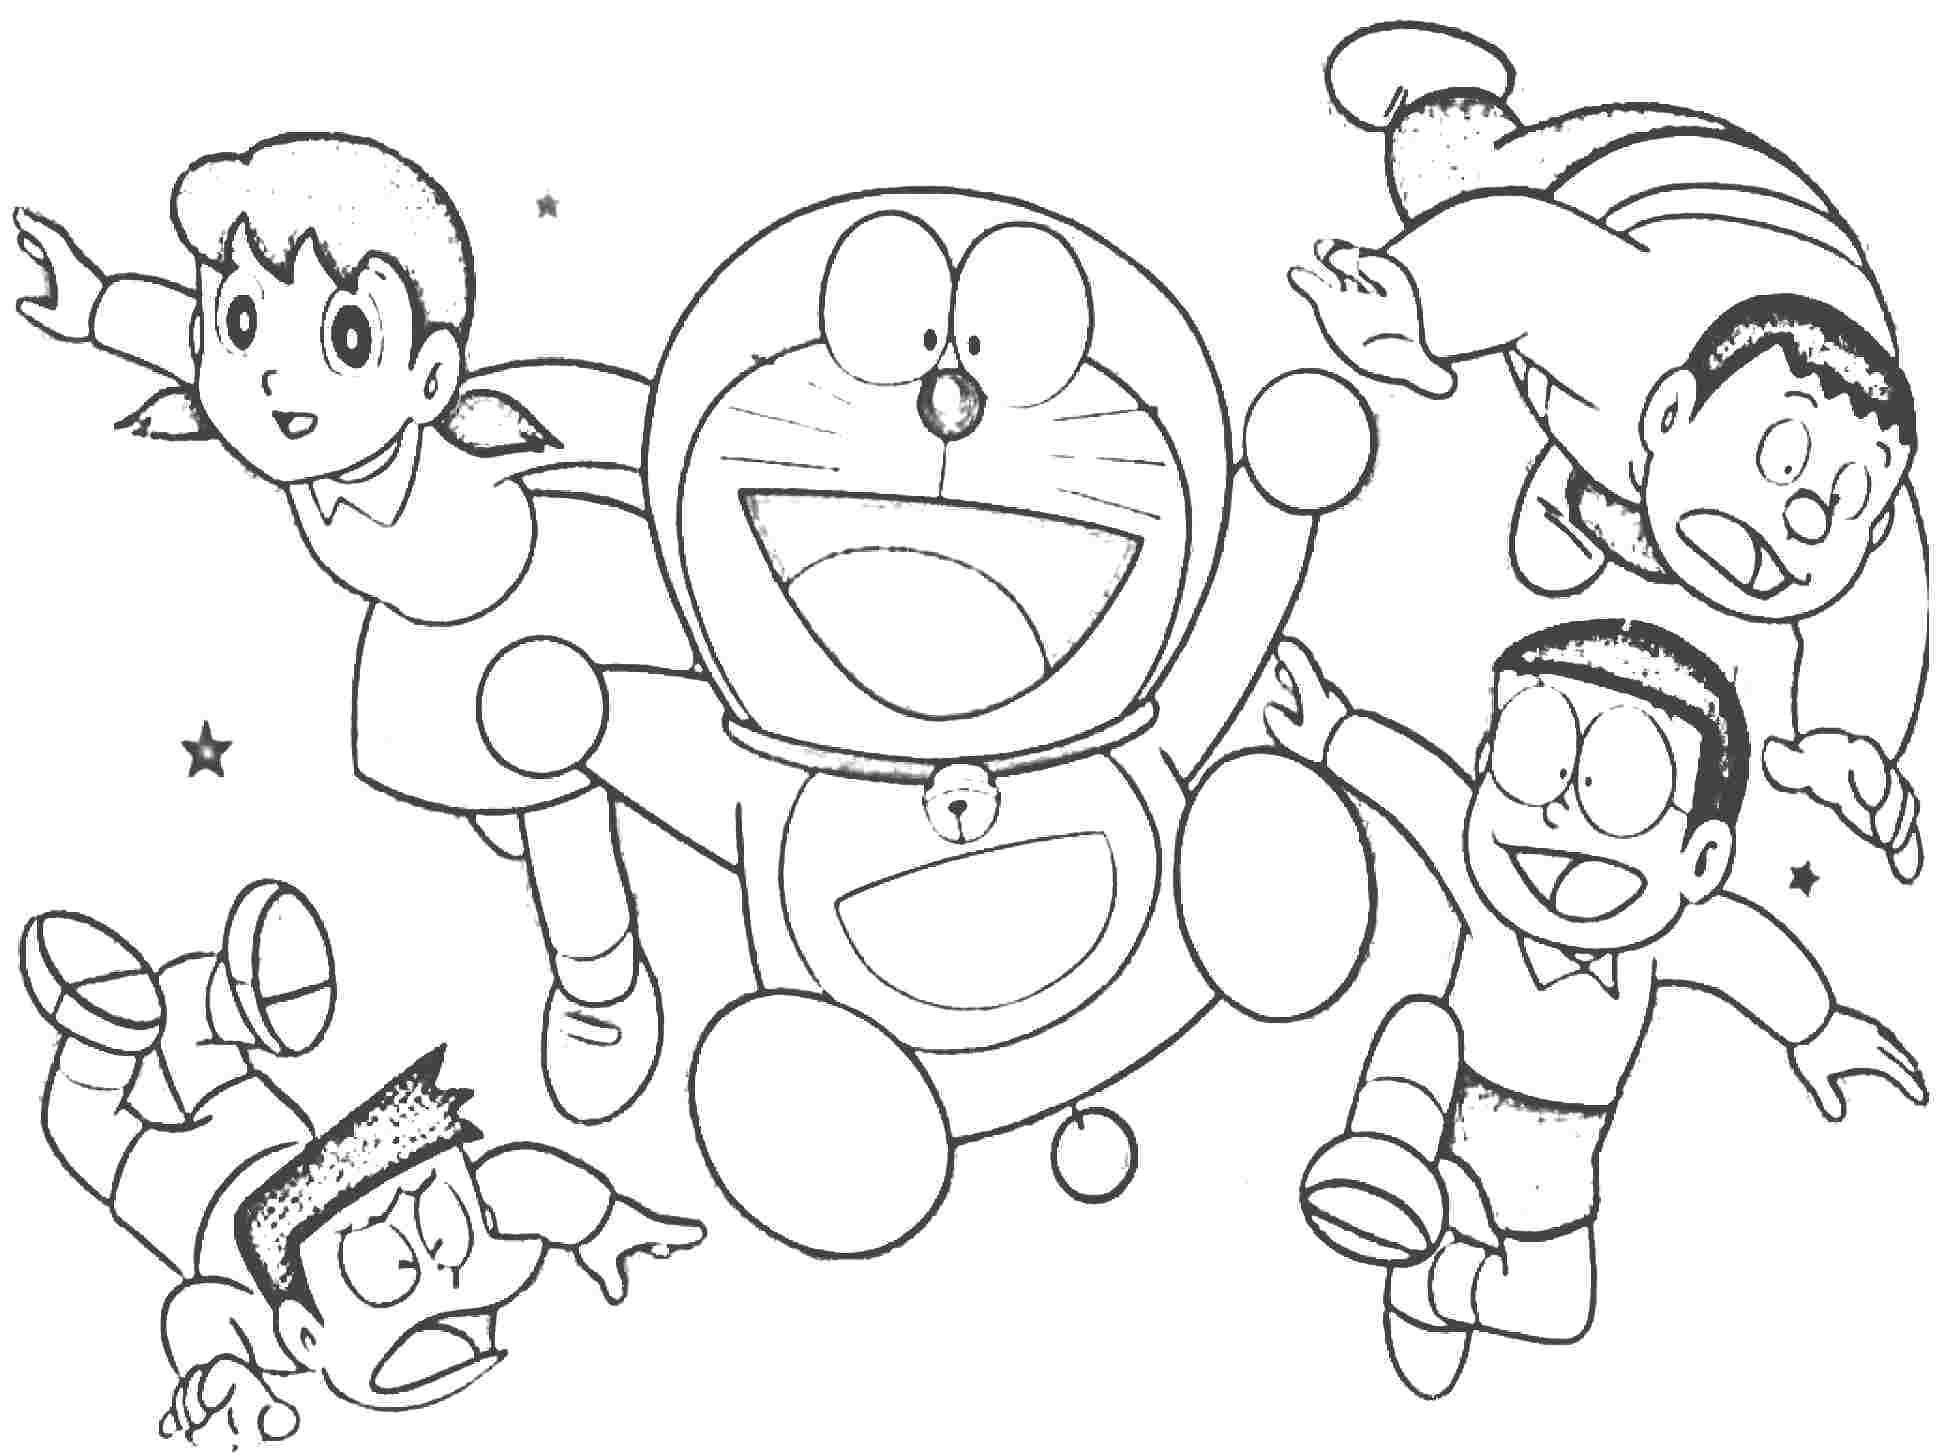 Cheerful Doraemon Coloring Book Makes Your Toddlers Love To Color